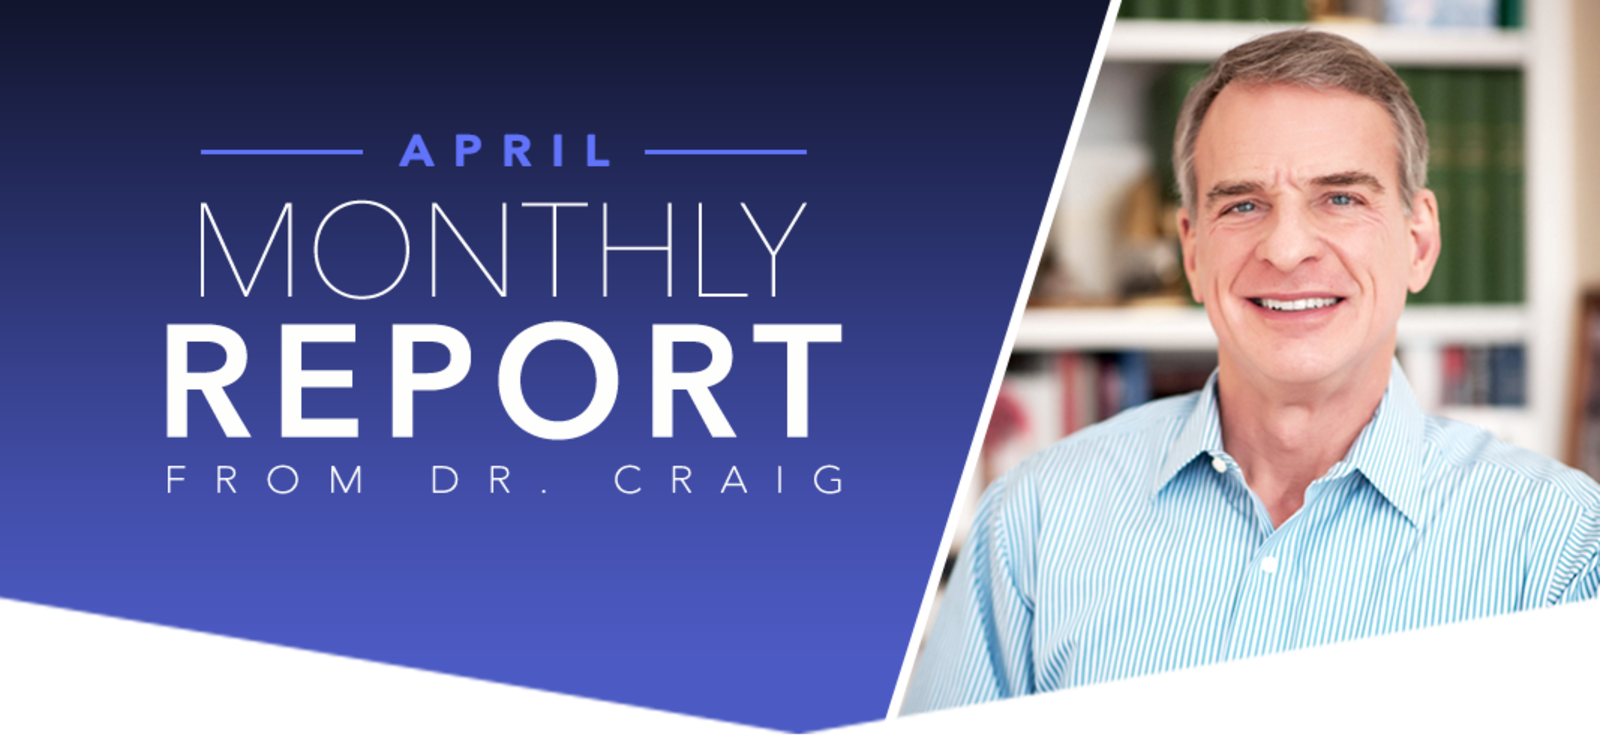 APRIL MONTHLY REPORT FROM DR. CRAIG